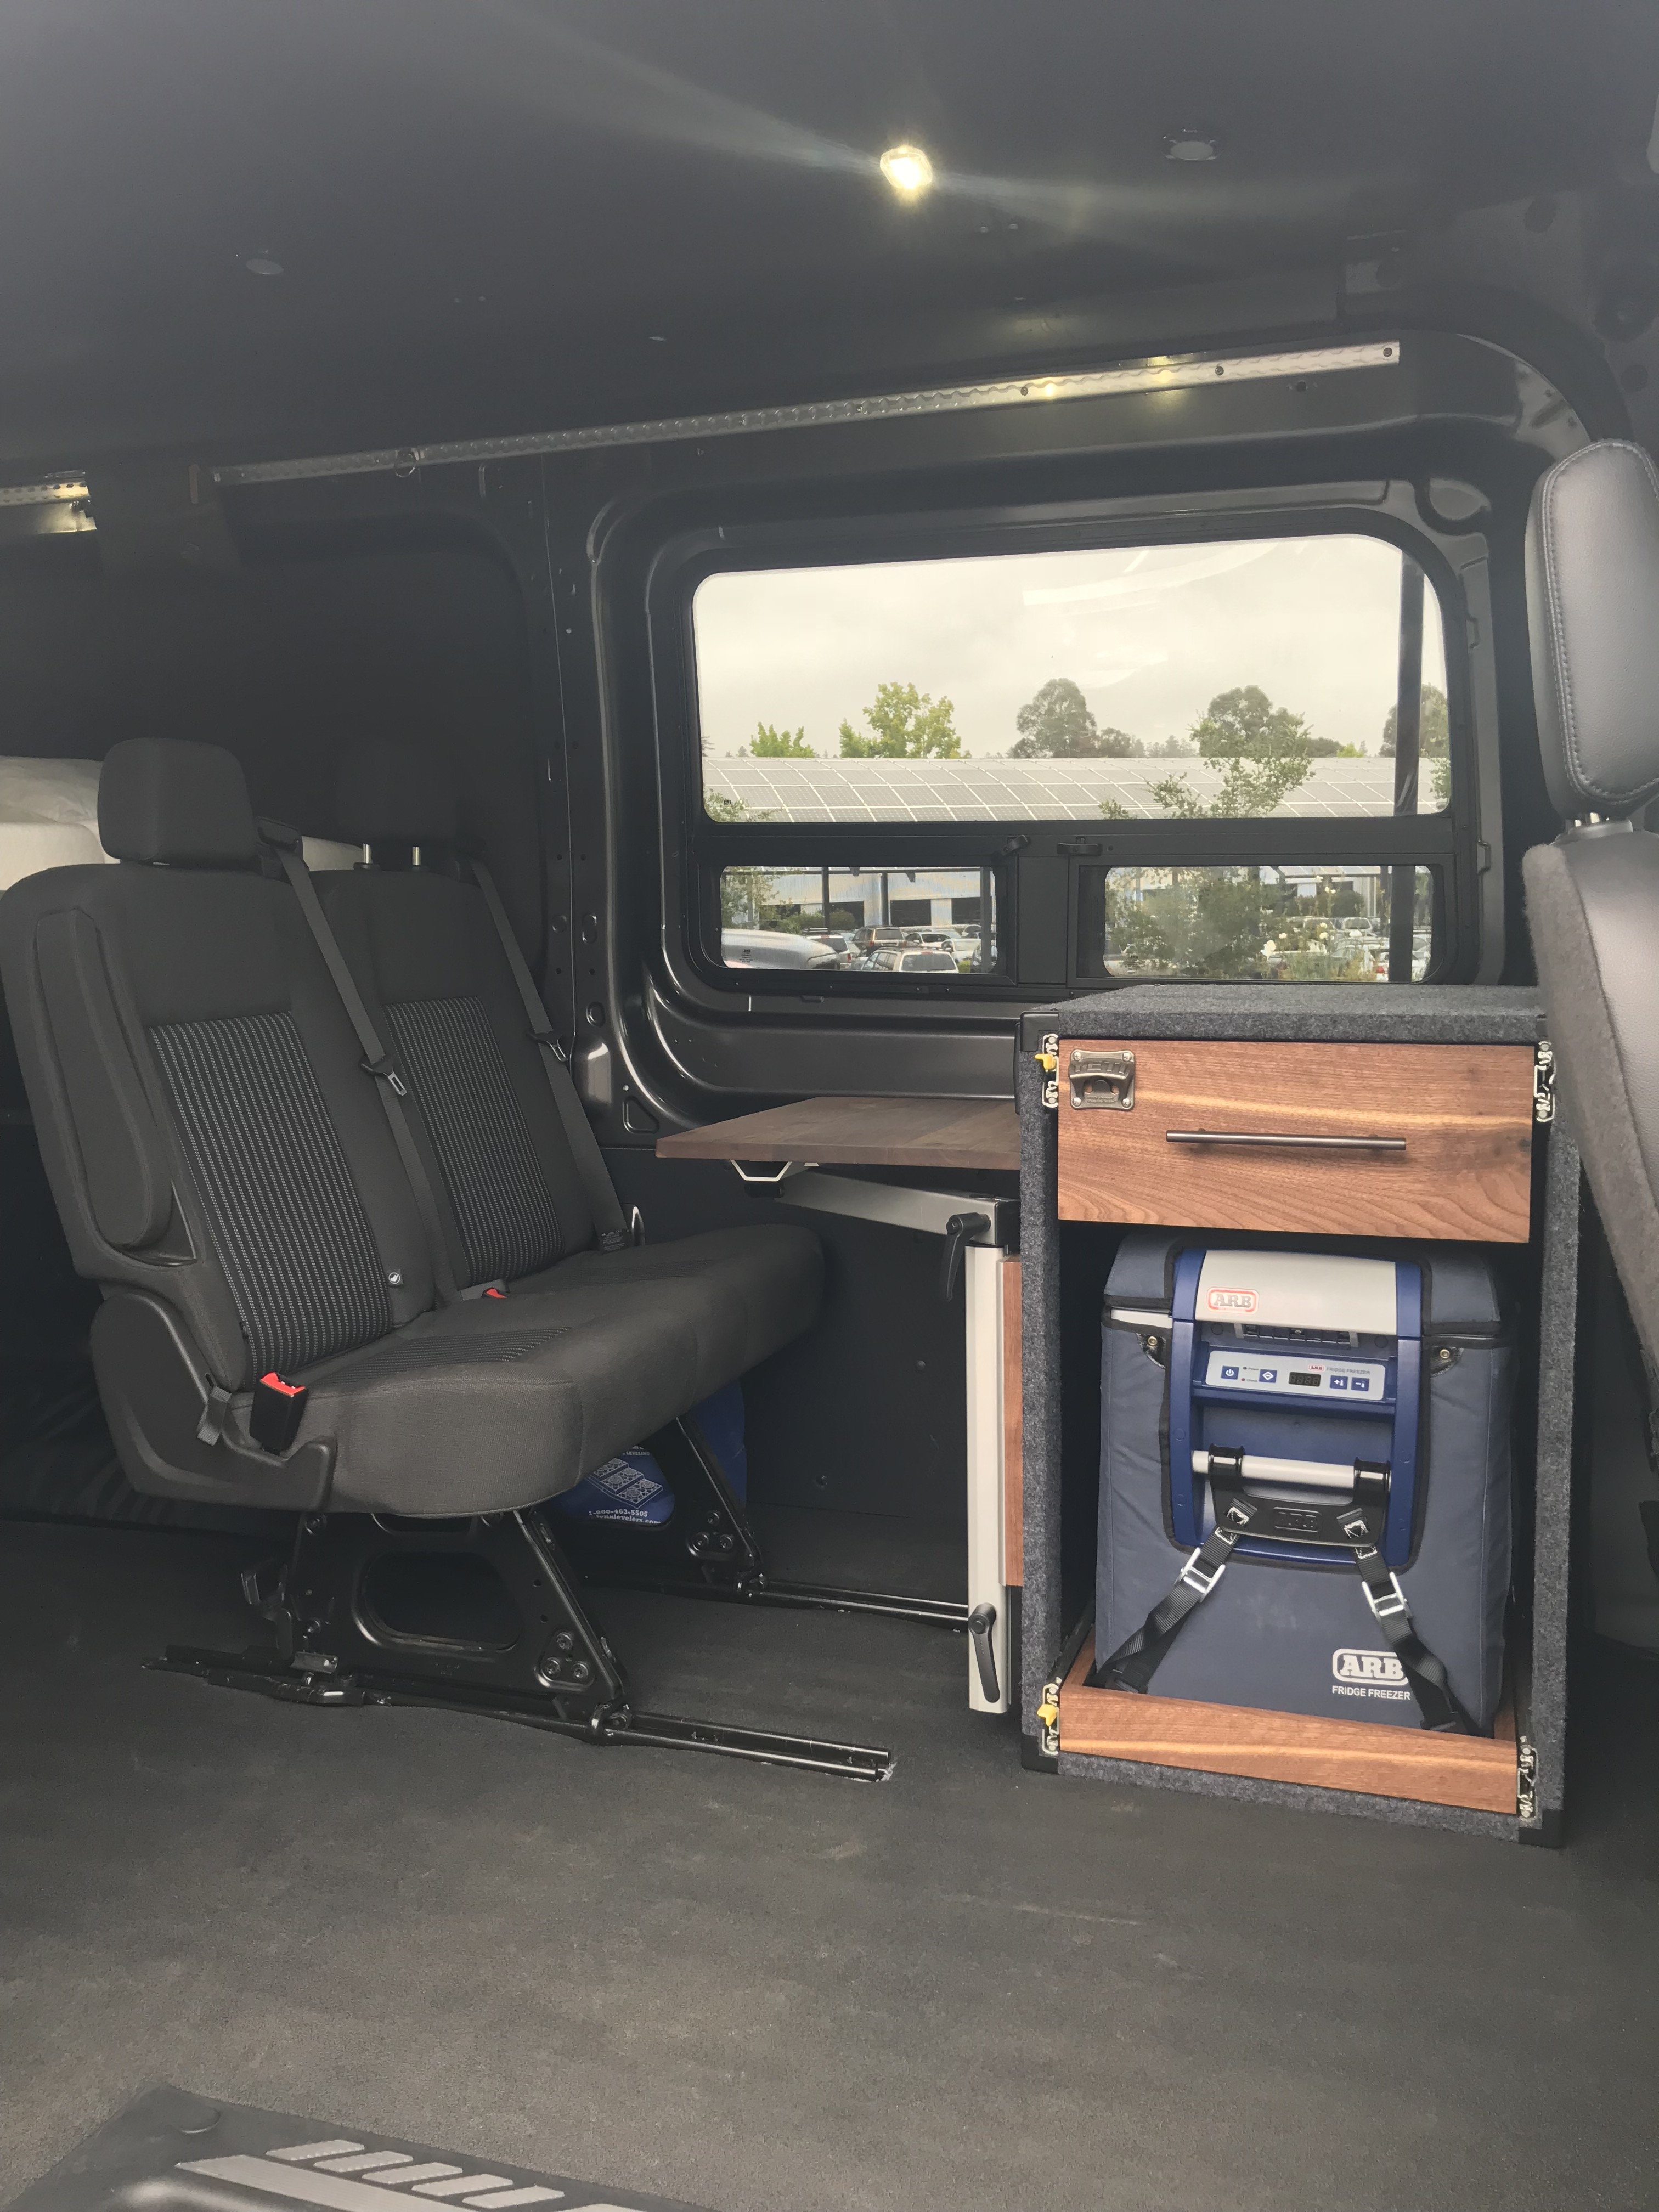 SOLD: 2018 Ford Transit Quigley 4x4 Camper. | Expedition ...